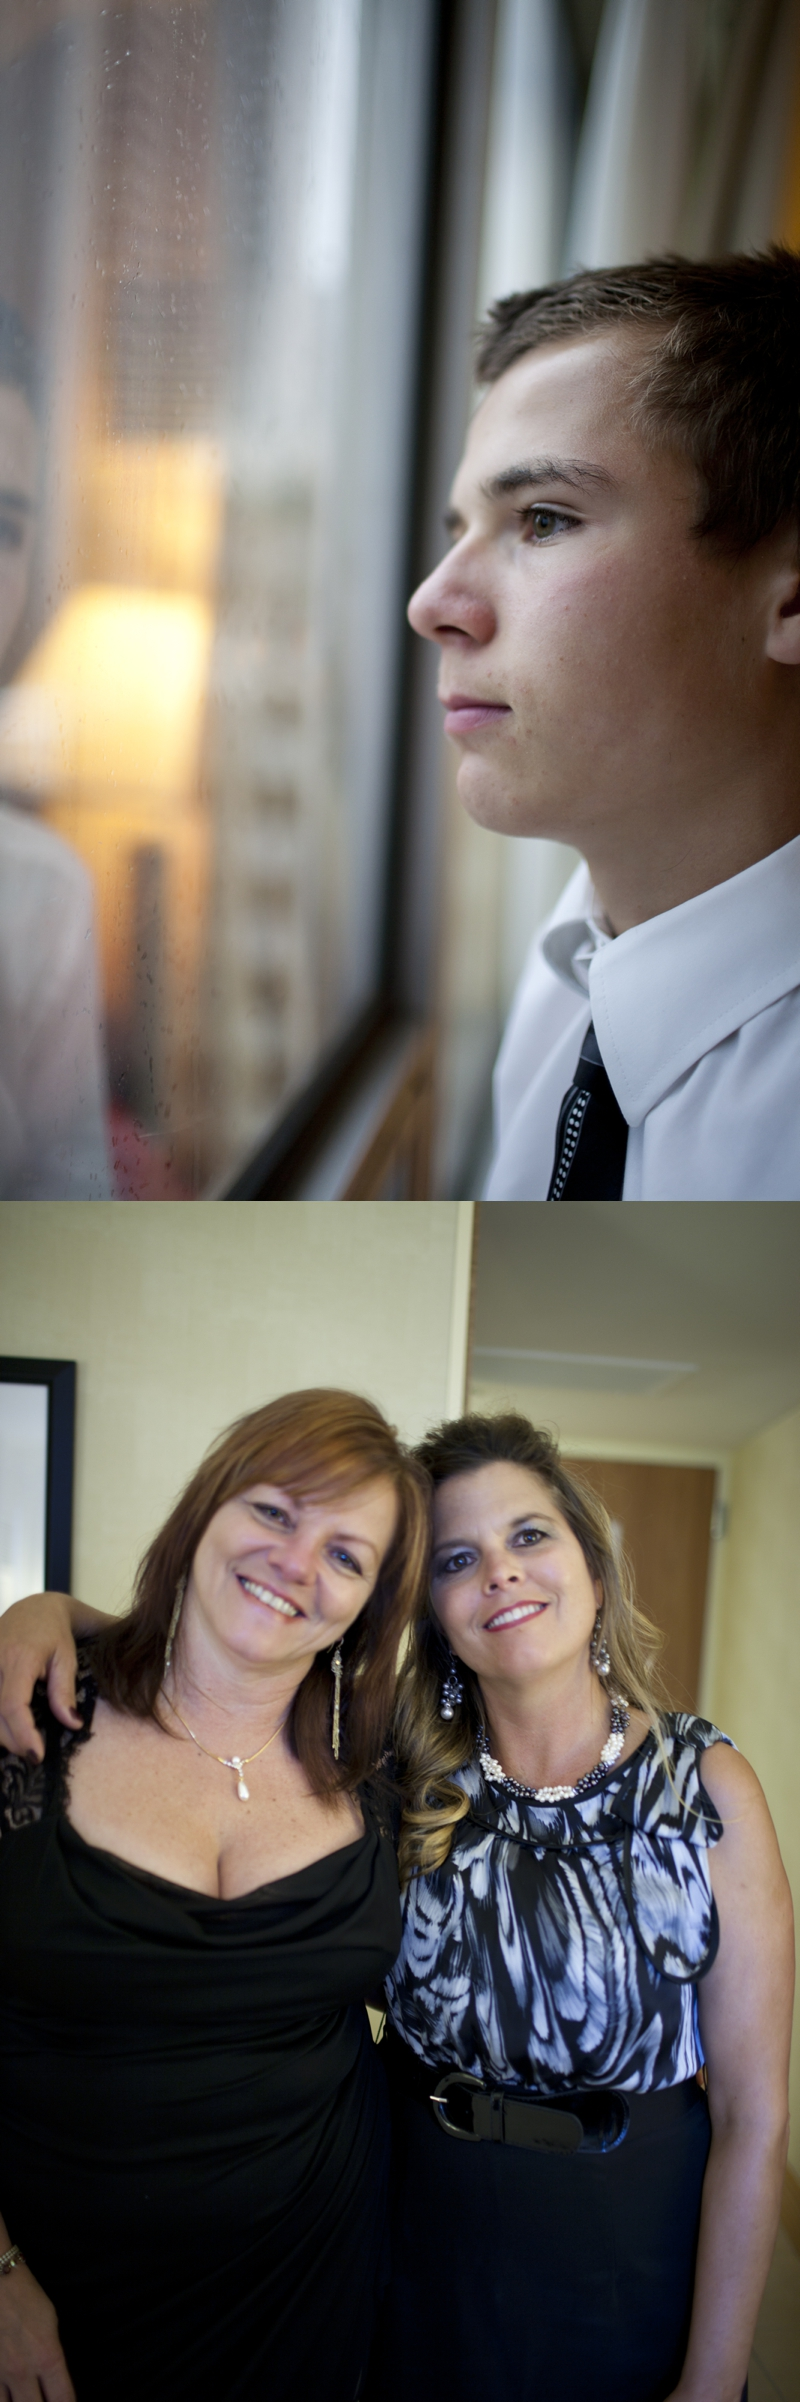 Luciano, what a stud :) (above) My Aunt Mia and Aunt Bonnie (Luc & Gino's mom) enjoying themselves before the party ;) (bottom)